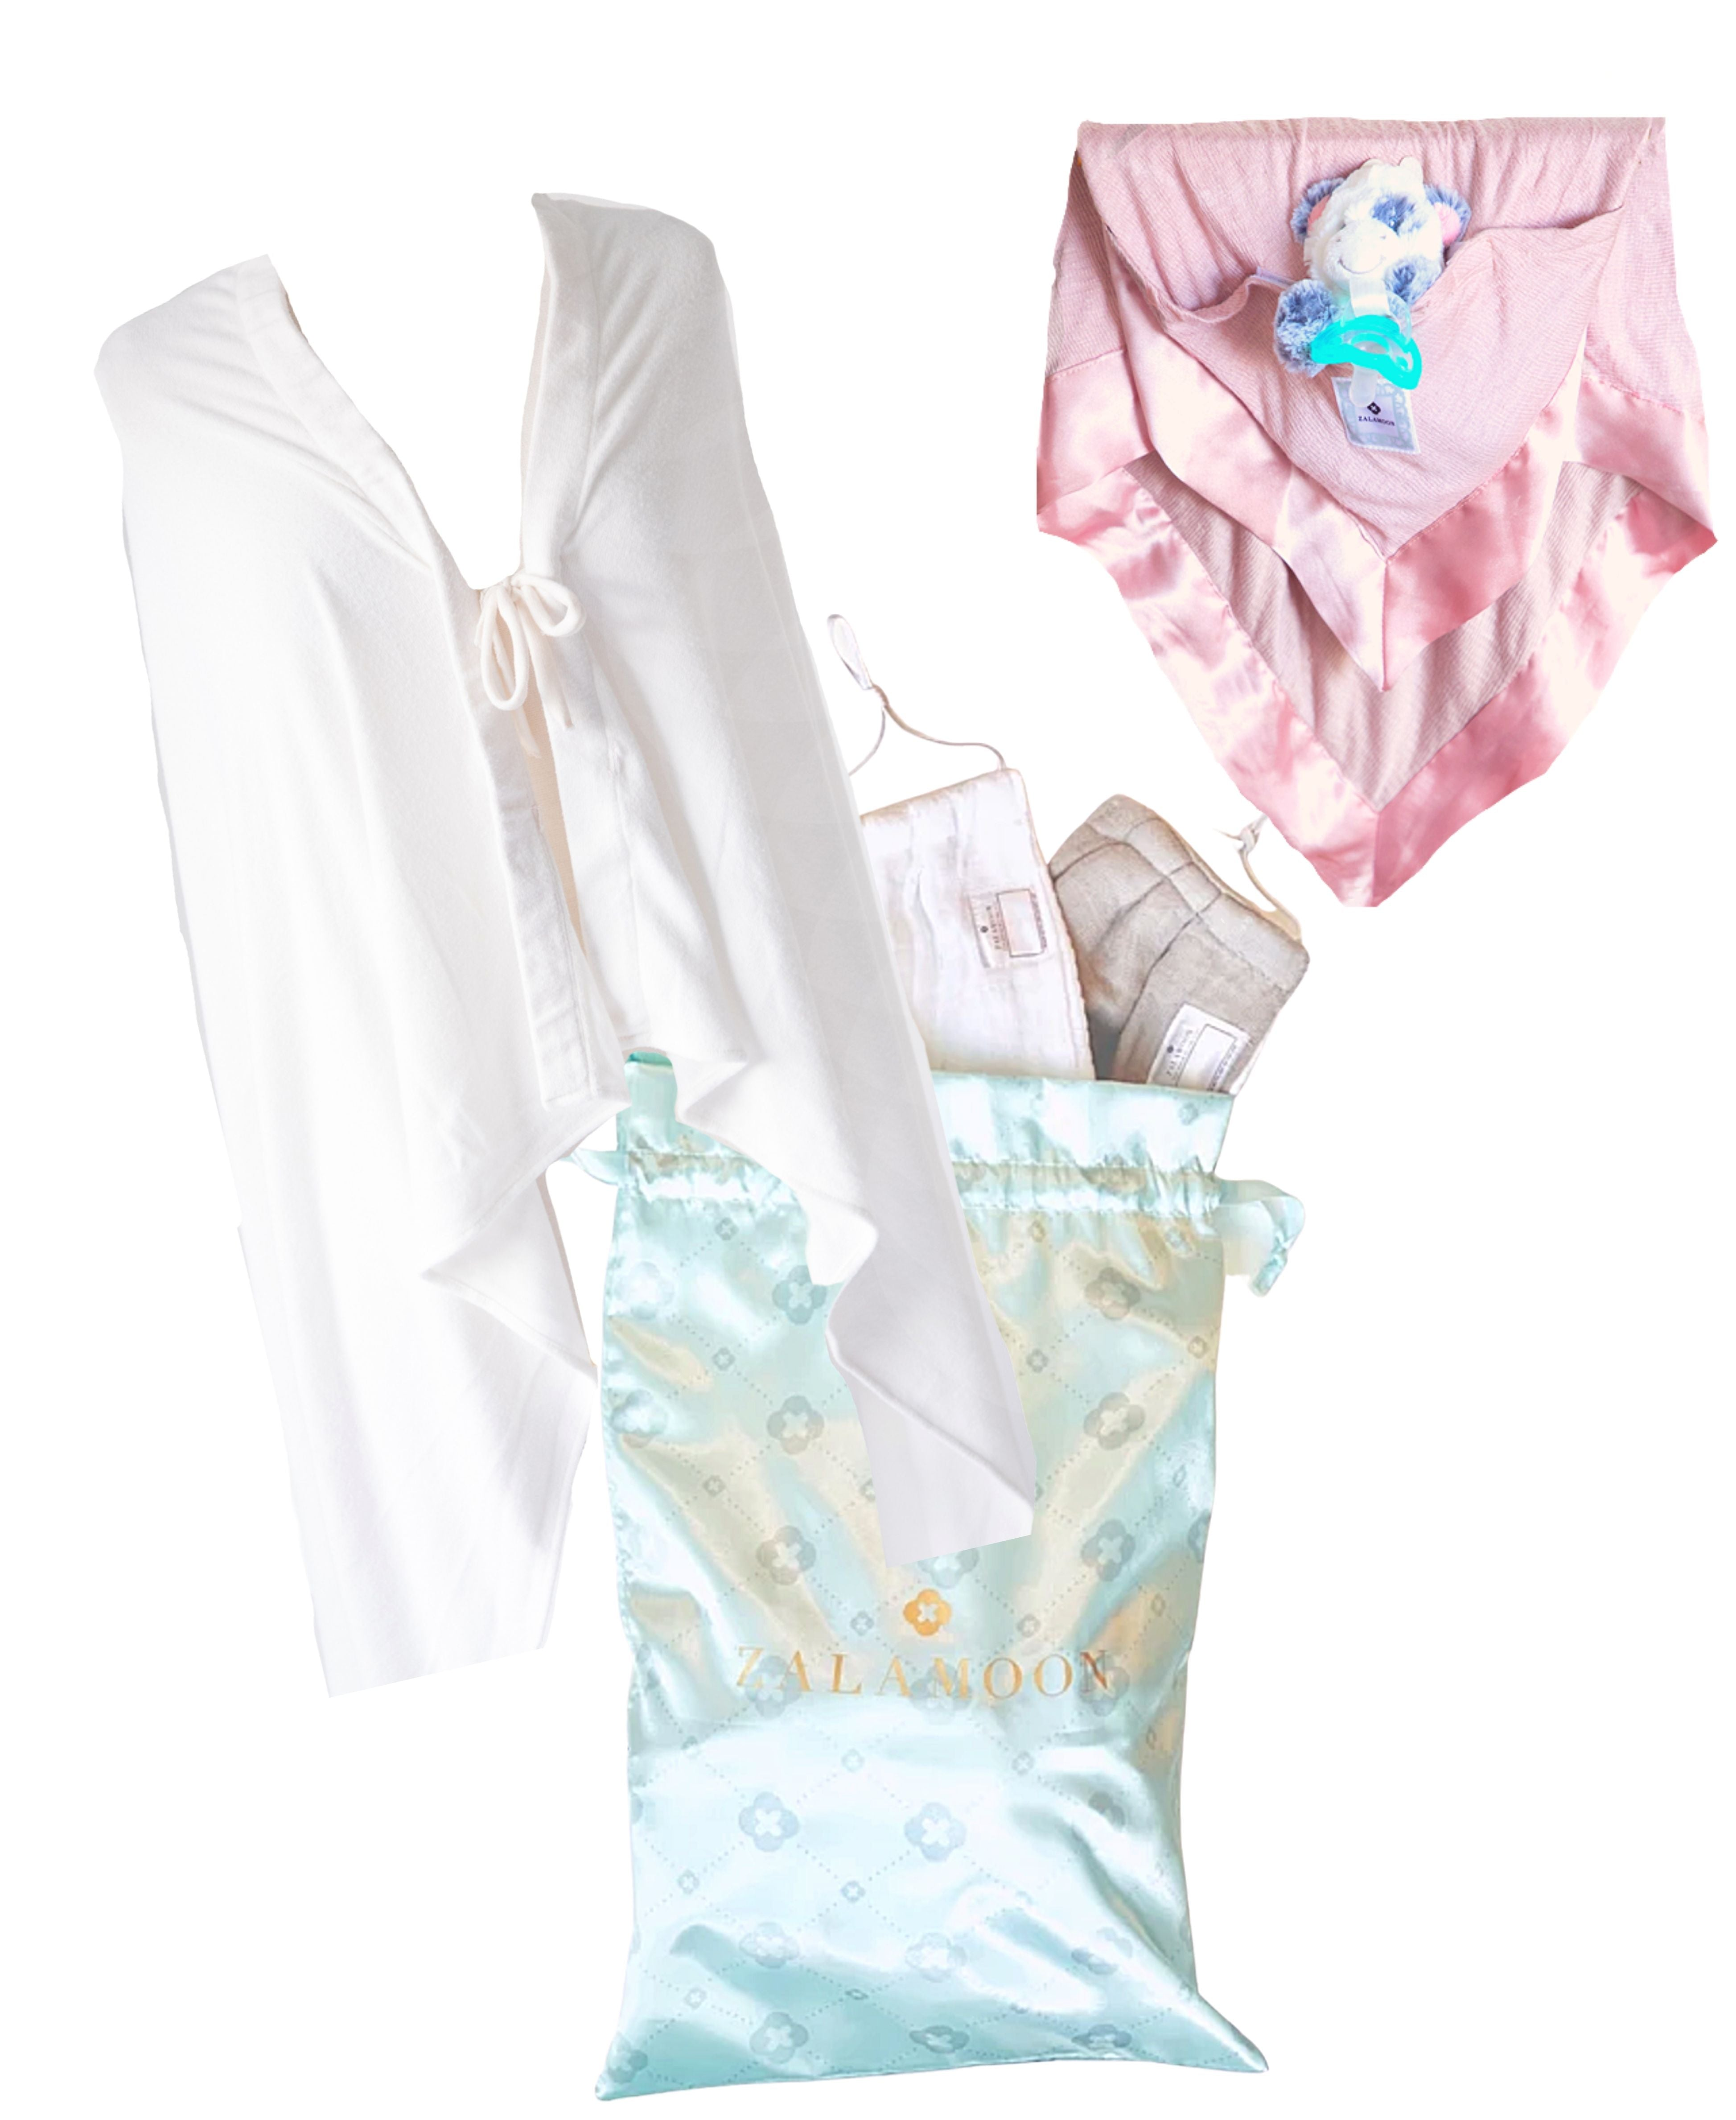 Labor + Delivery Gift Set for Baby Girl